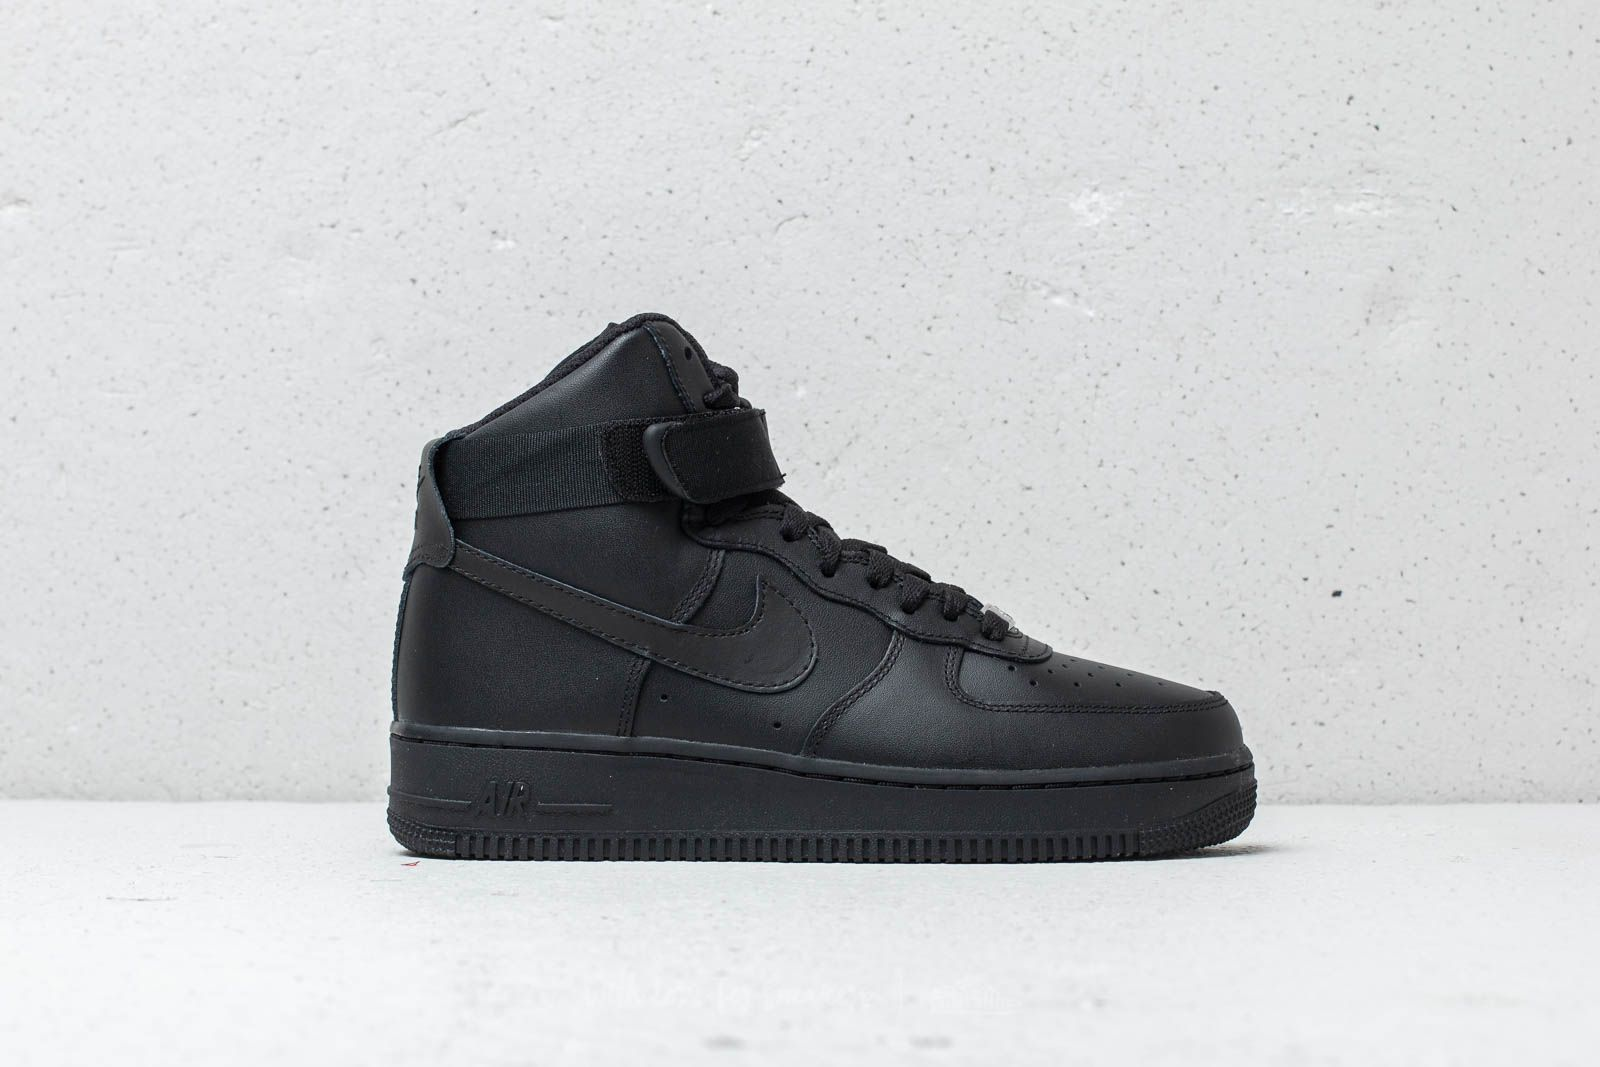 premium selection 8669c 74545 Nike Wmns Air Force 1 High Black  Black-Black at a great price 117